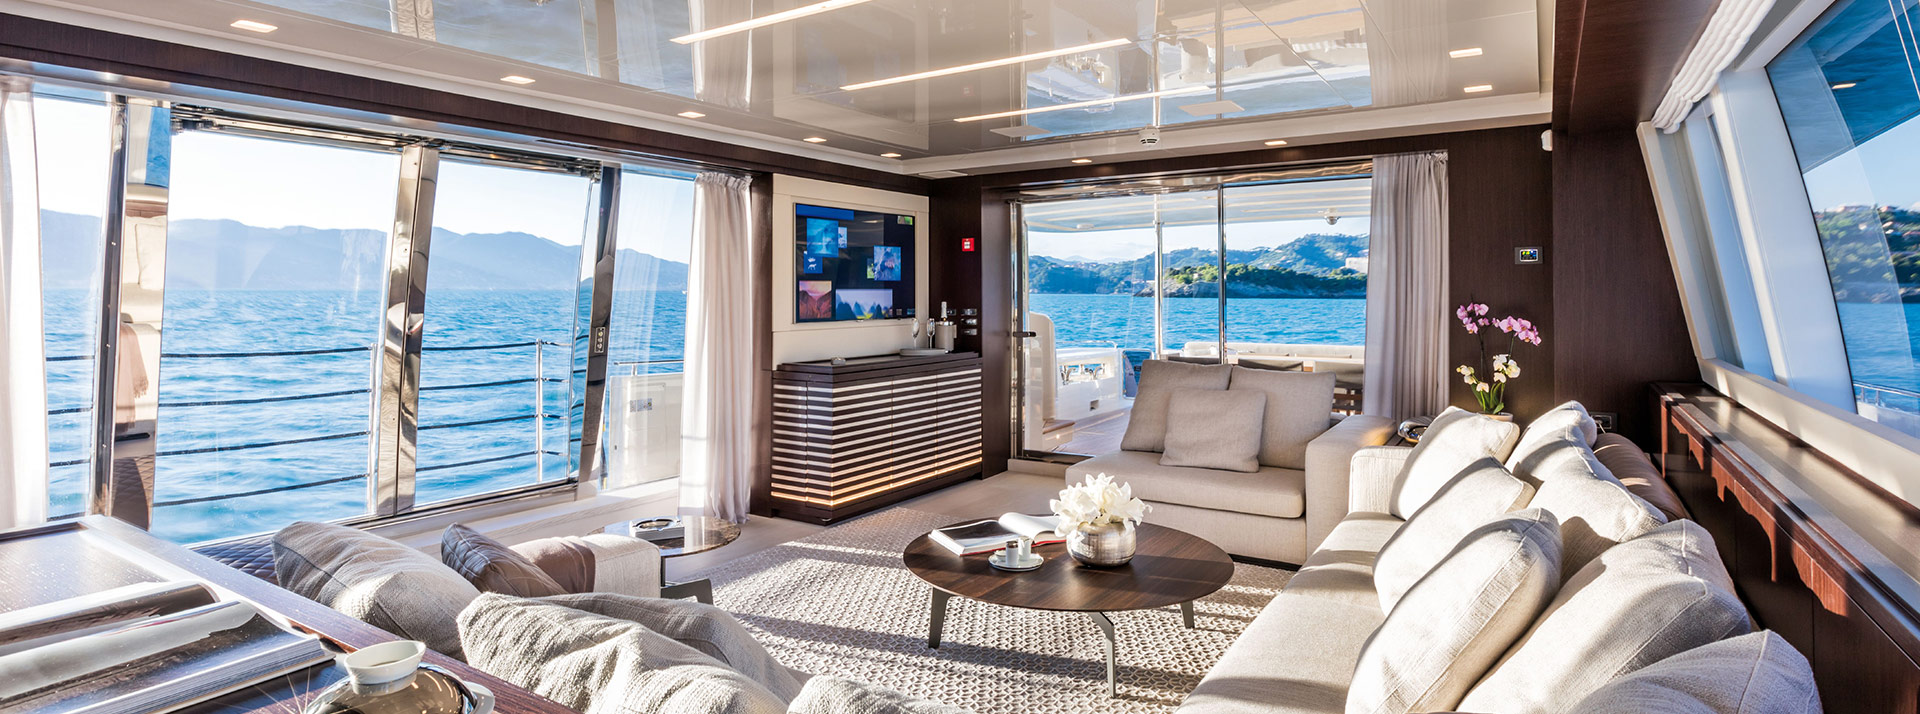 VVIP-travel-yacht-charter-interior-4